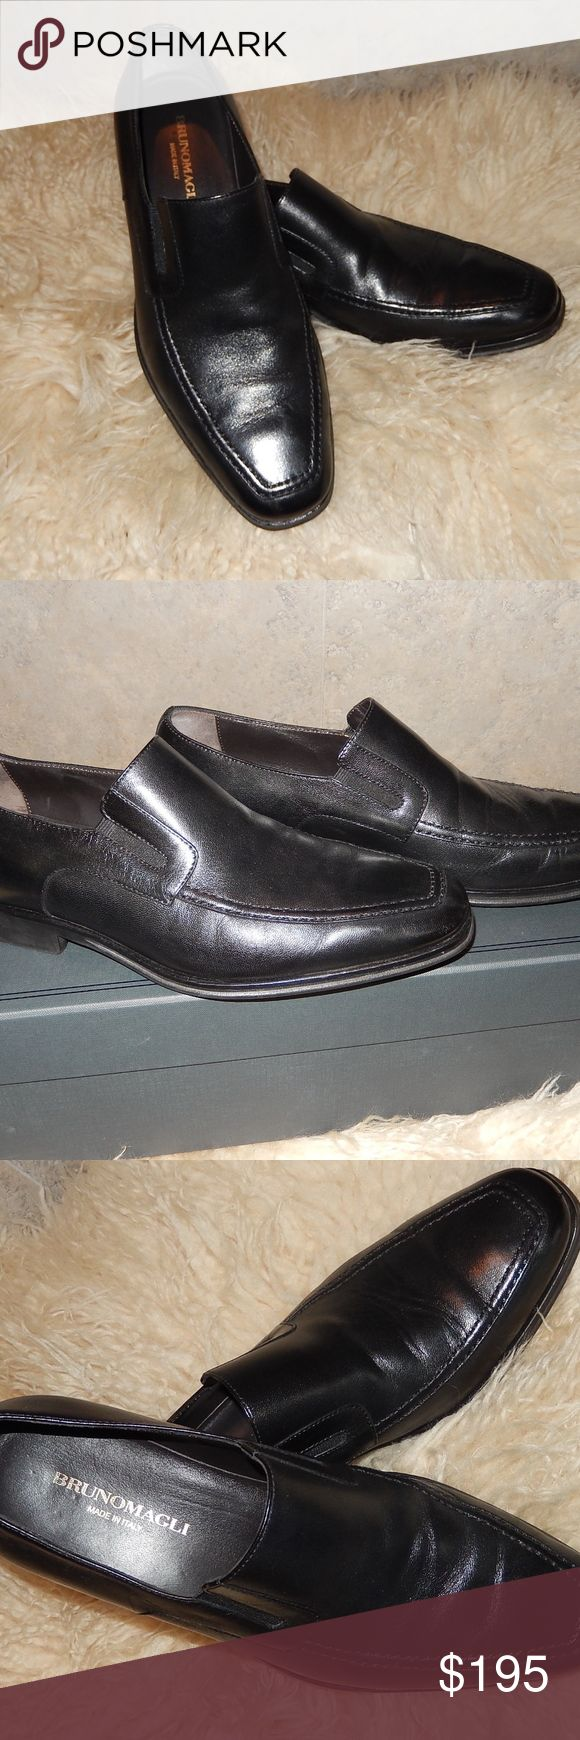 Brunomagli Black leather loafers-RAGING-sz 8.5 Gorgeous pair of Brunomagli mens loafers made in Italy   One scuff on left toe.  see photos for best description! You will love these and just in time for the Holidays!!!  *box not included Bruno Magli Shoes Loafers & Slip-Ons